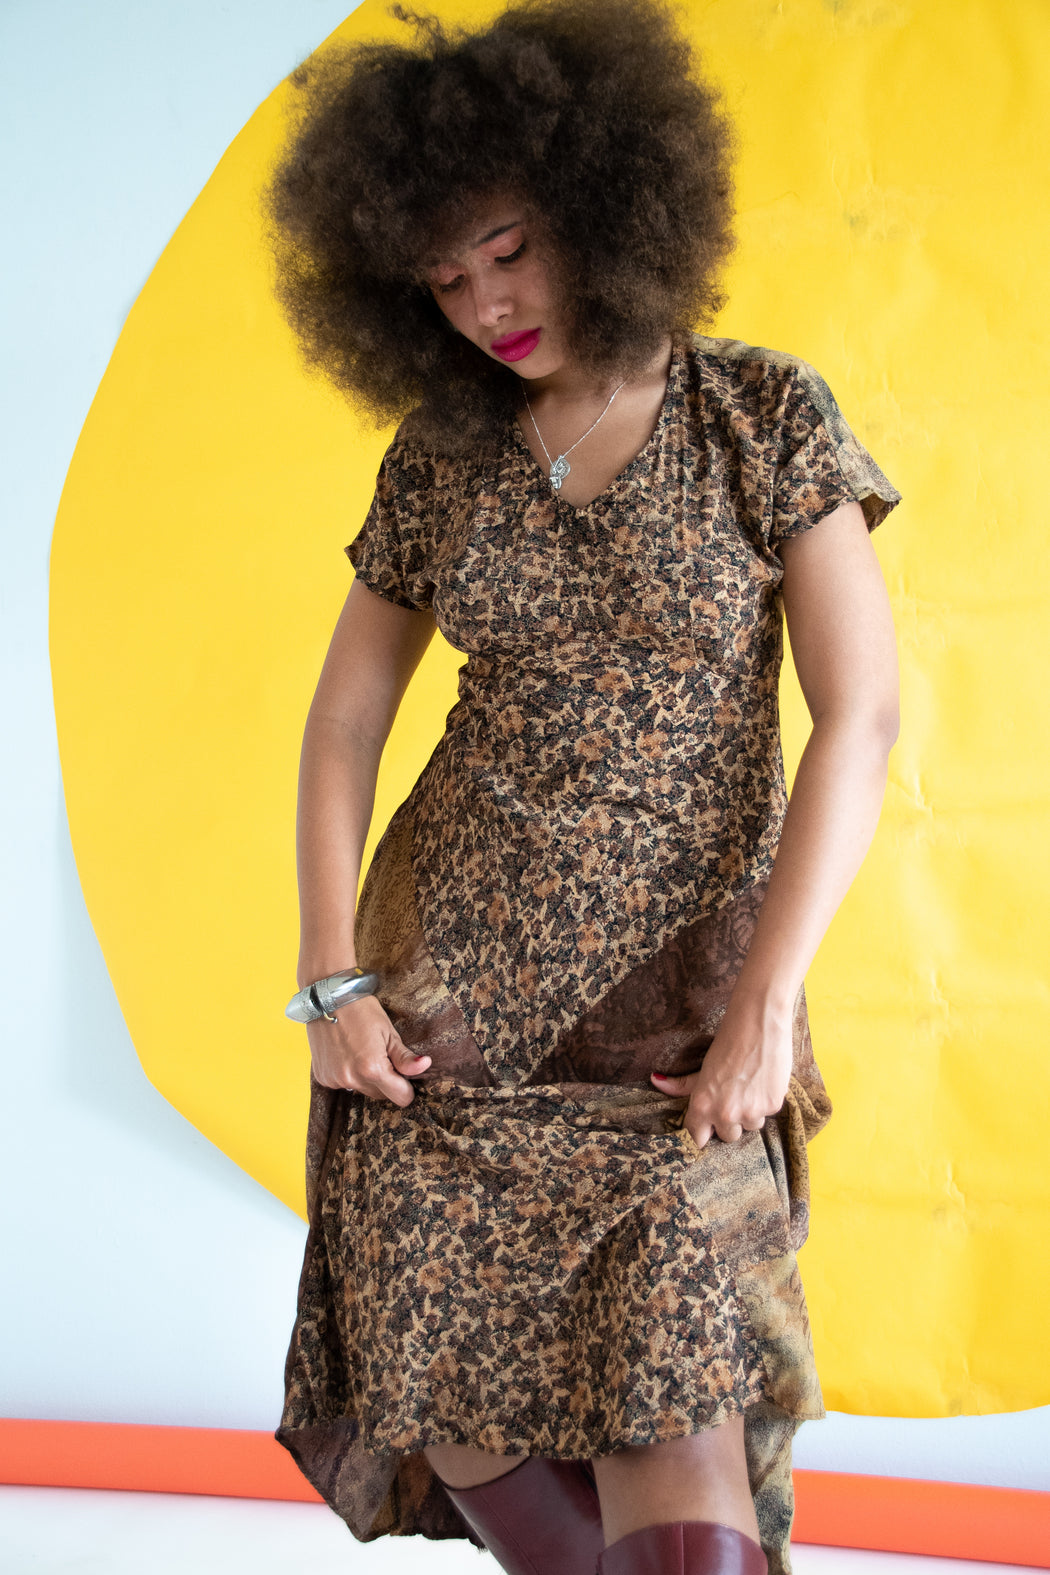 80s Leopard Patchwork Dress